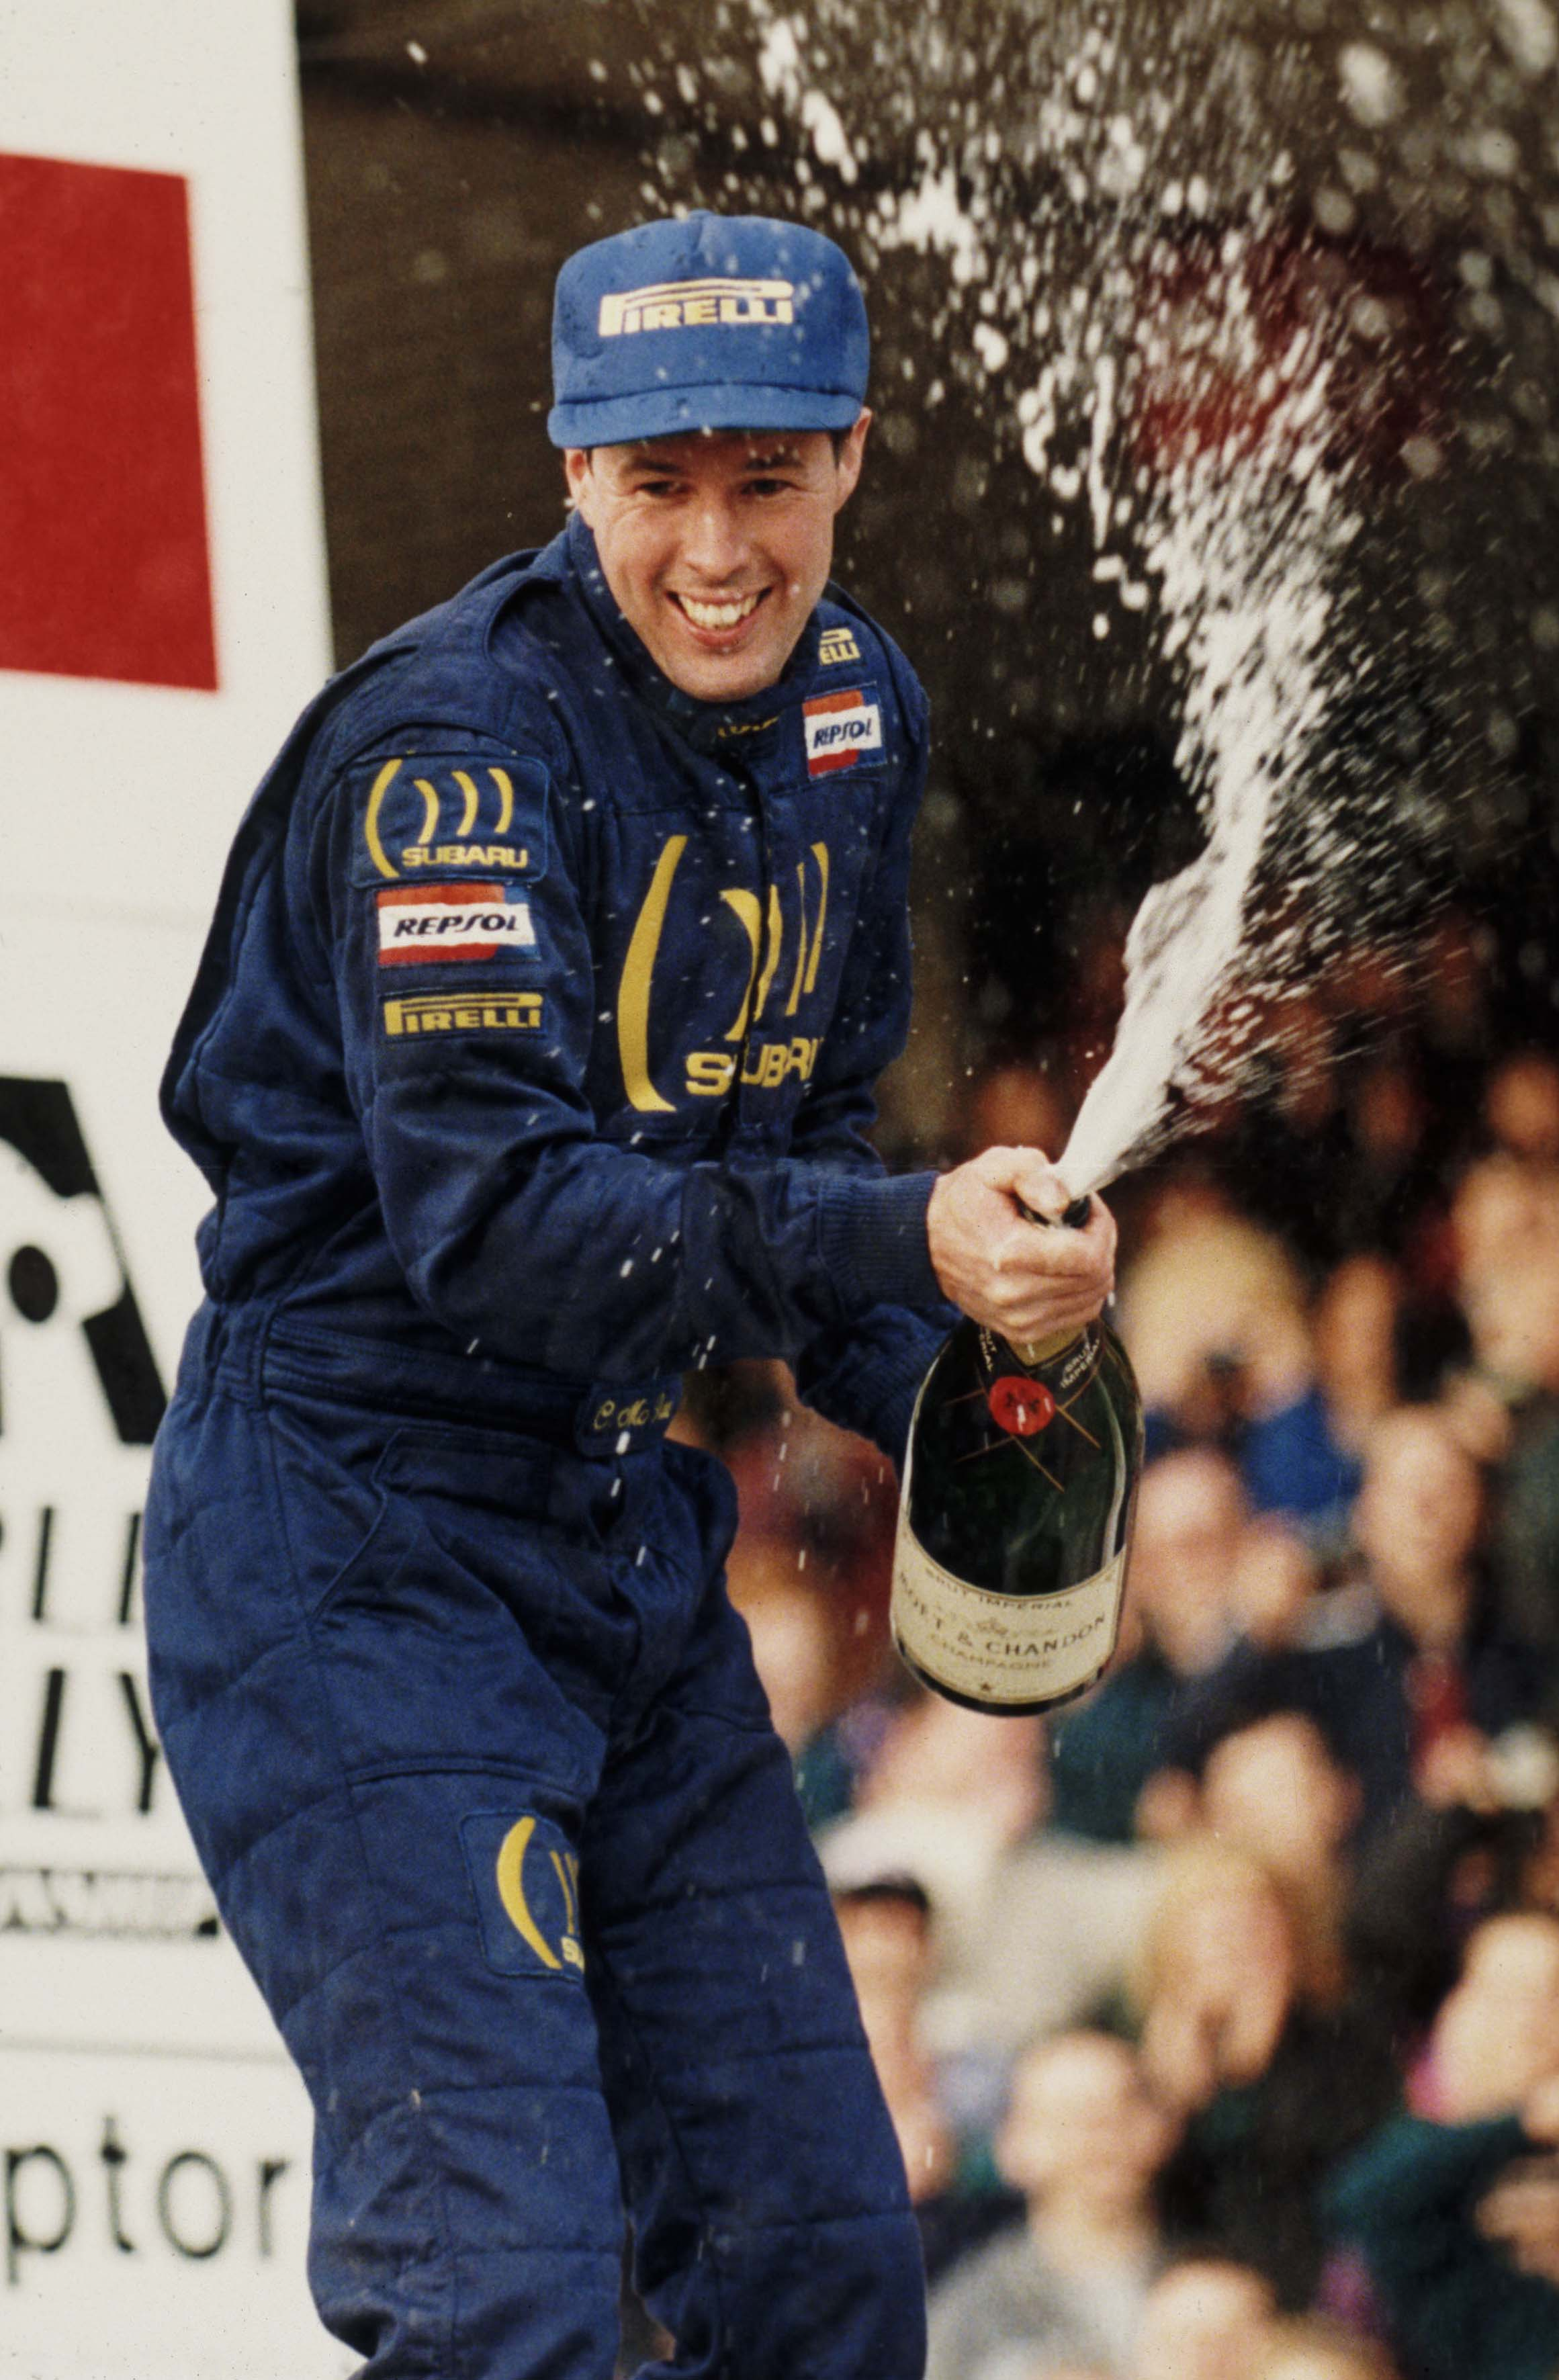 02 Sep: McRae Celebration In Wales